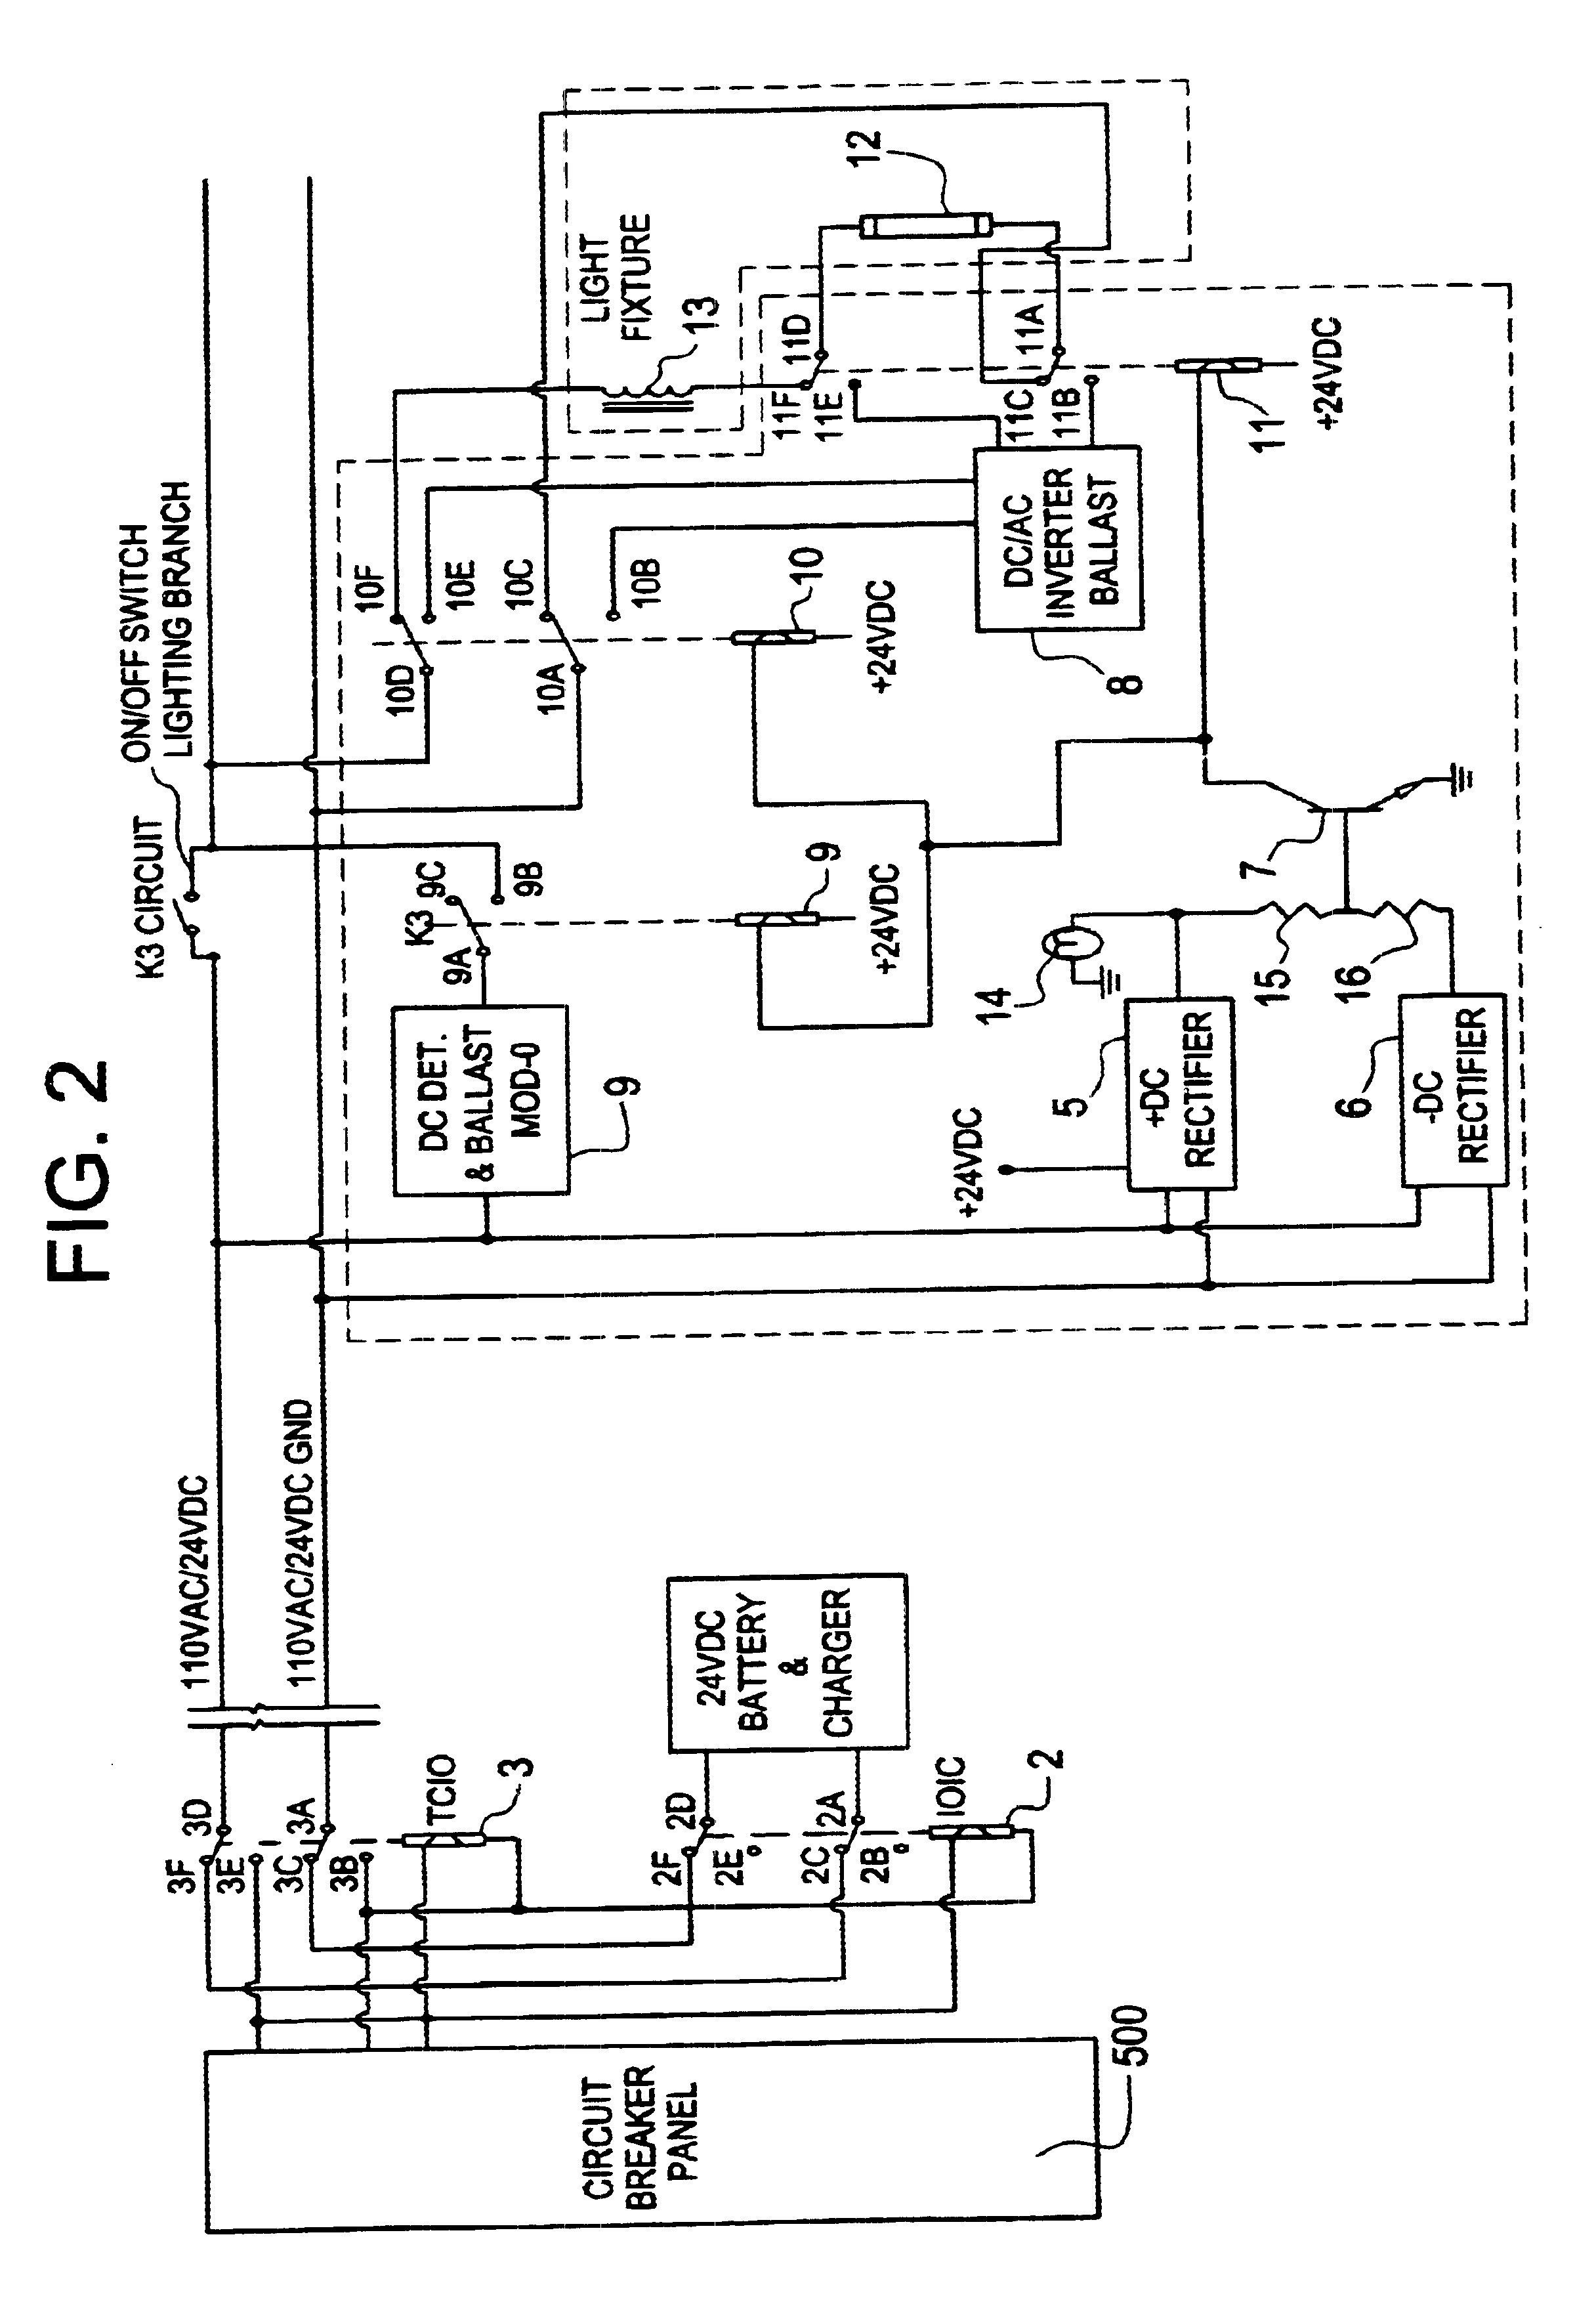 Home Telephone Wiring Diagram Simple